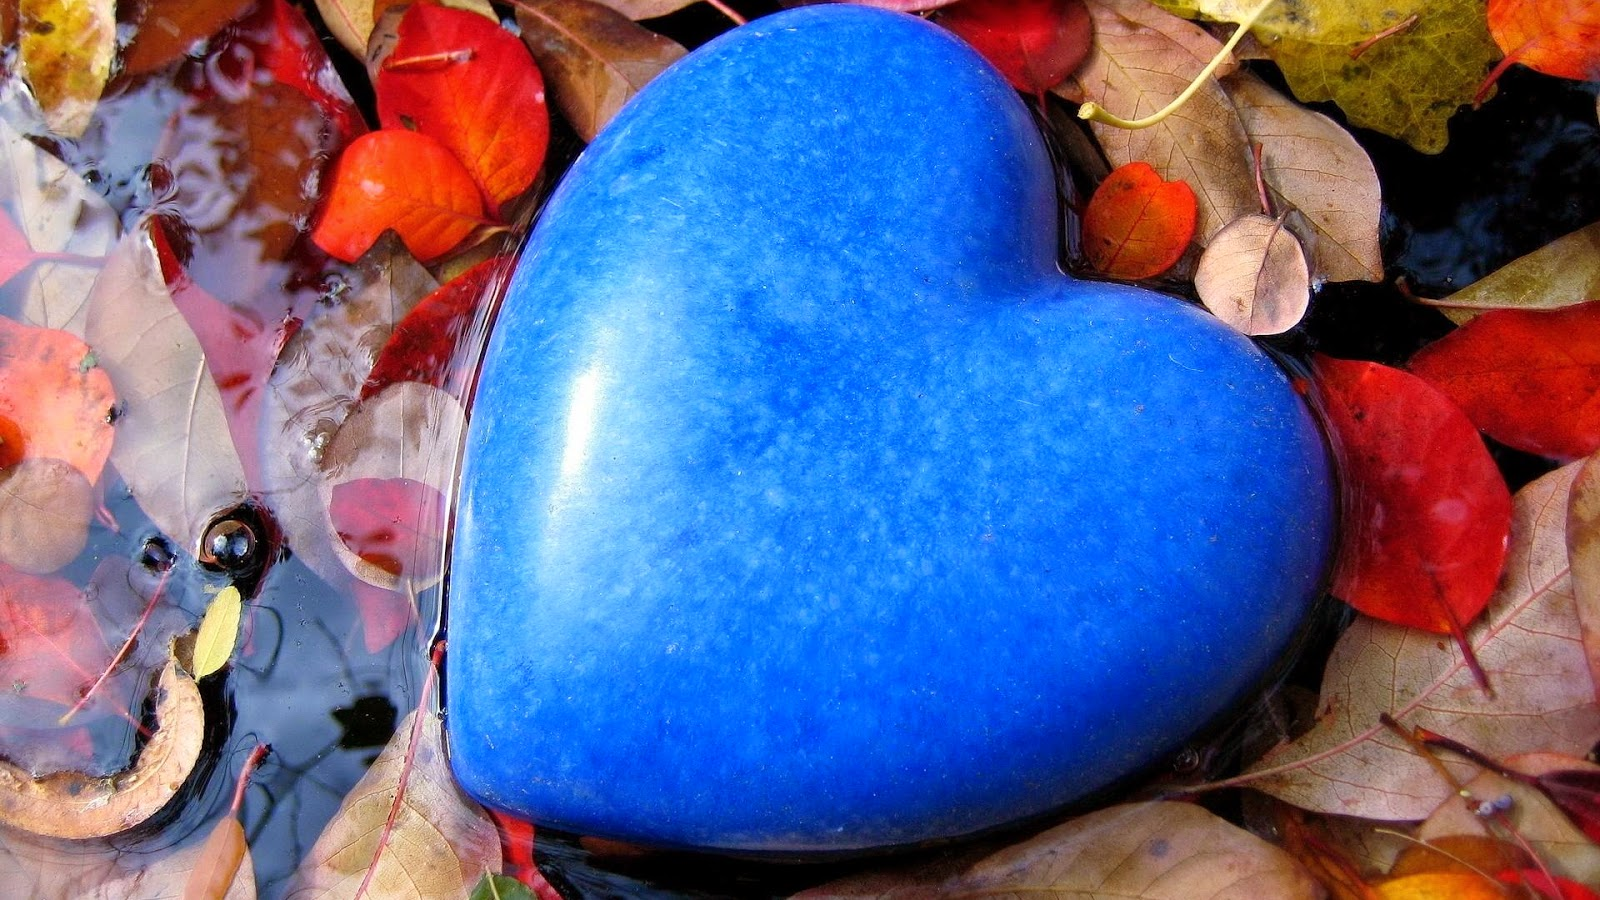 Love-heart-shape-of-stones-wallpaper